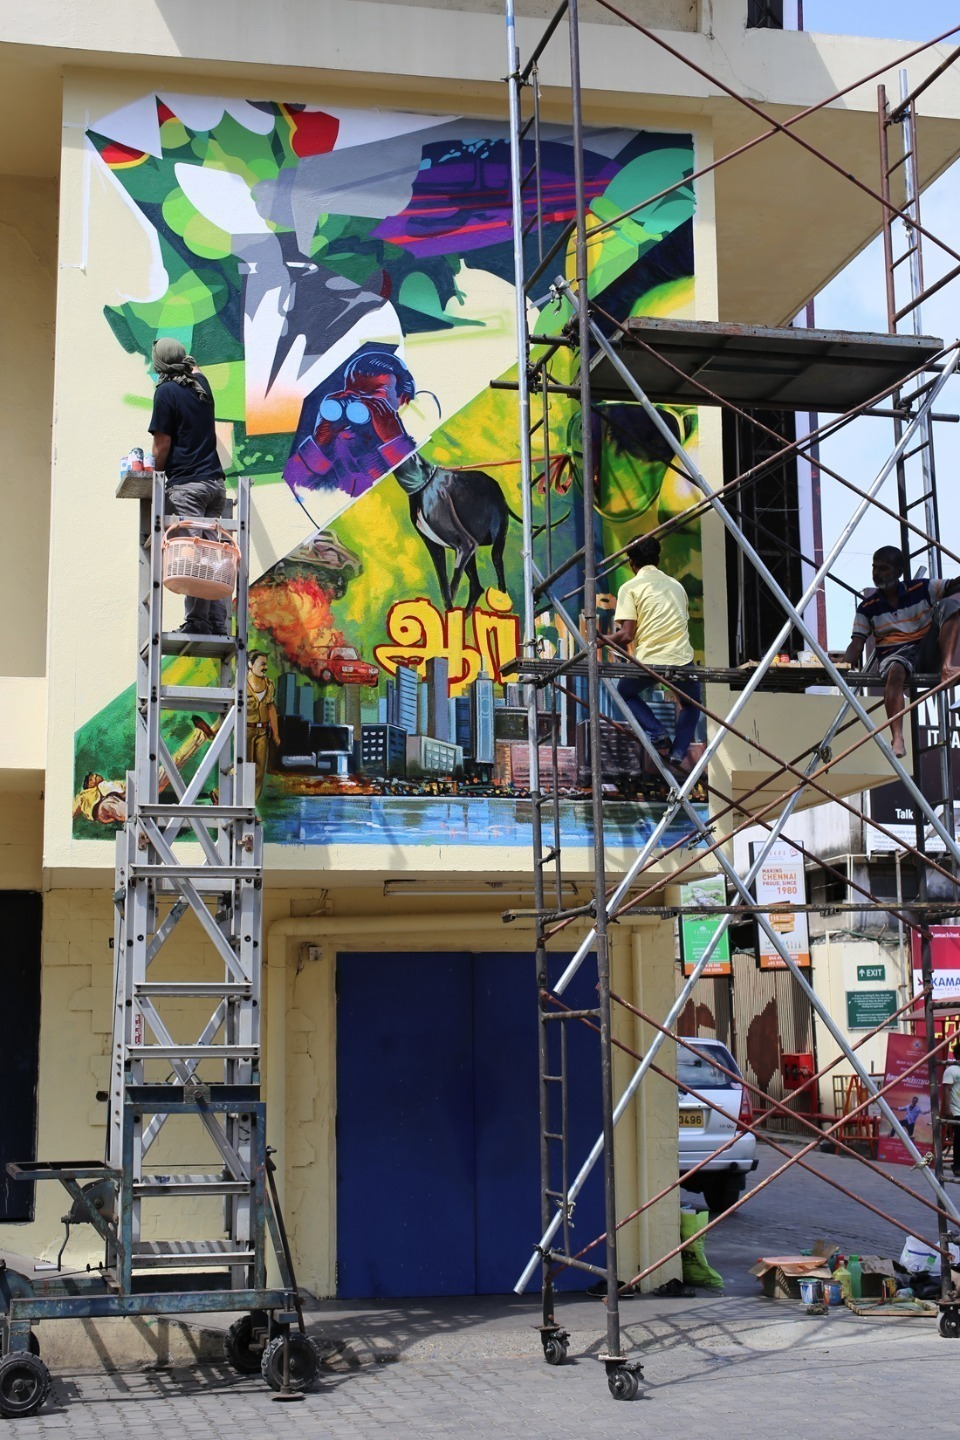 satone-a-series-of-murals-in-chennai-india-05